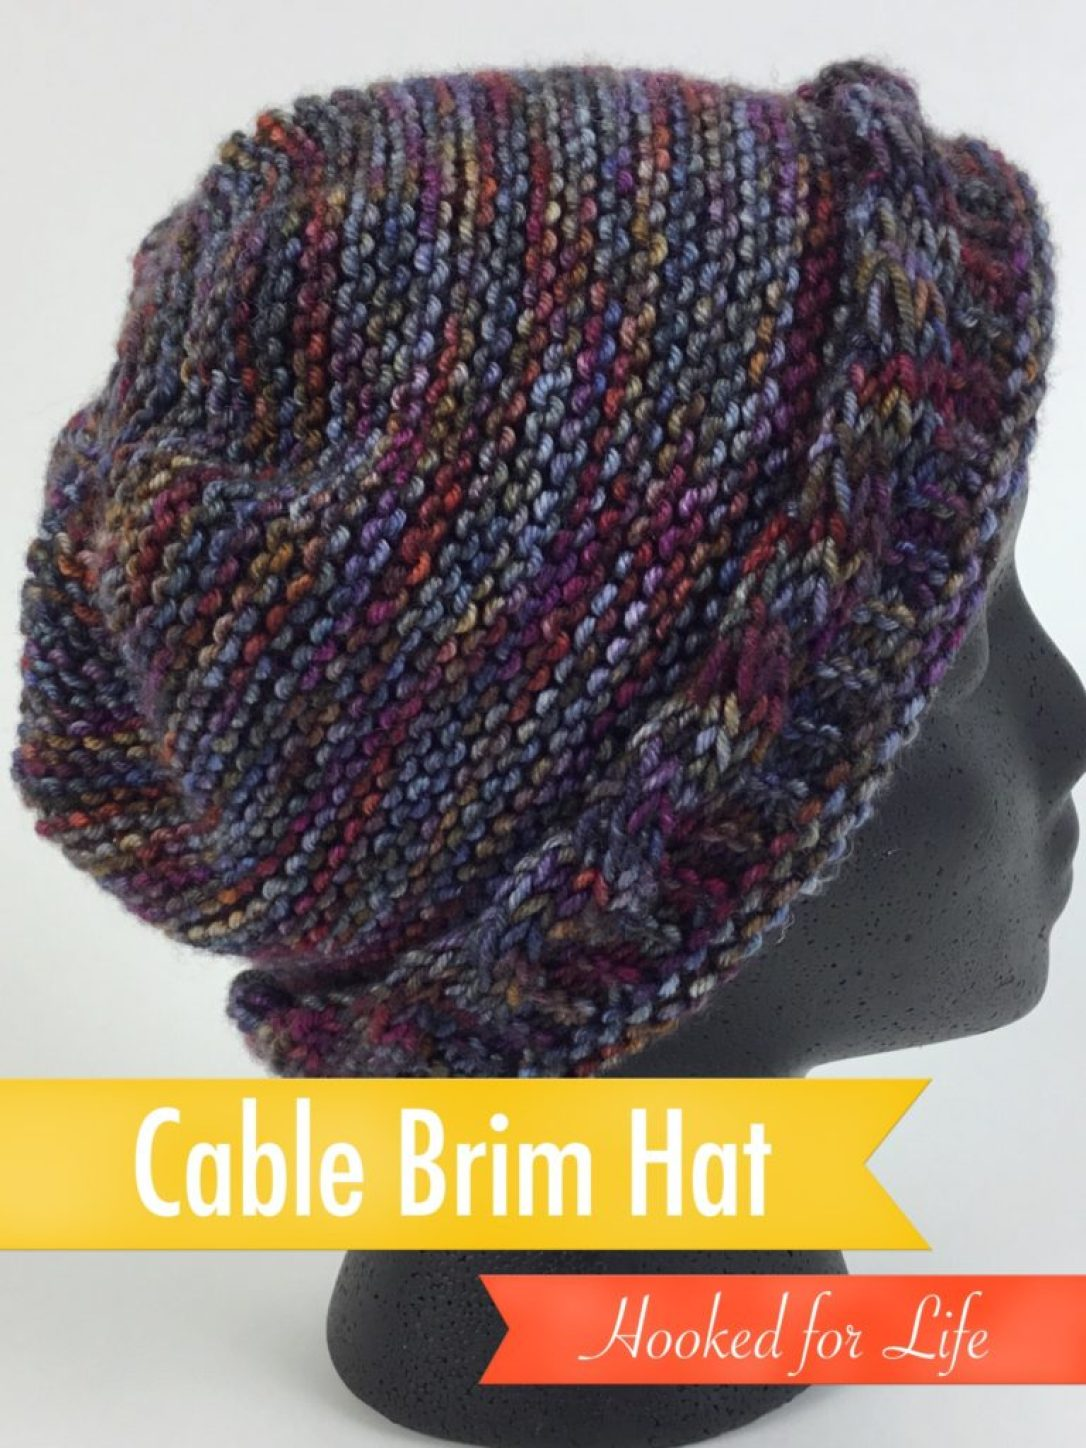 Free Knit Hat pattern with reversible cabled brim. Can be work slouchy or close, knit on straight or circular needles. Worsted weight yarn. #freeknitpattern #cableknitting #hat